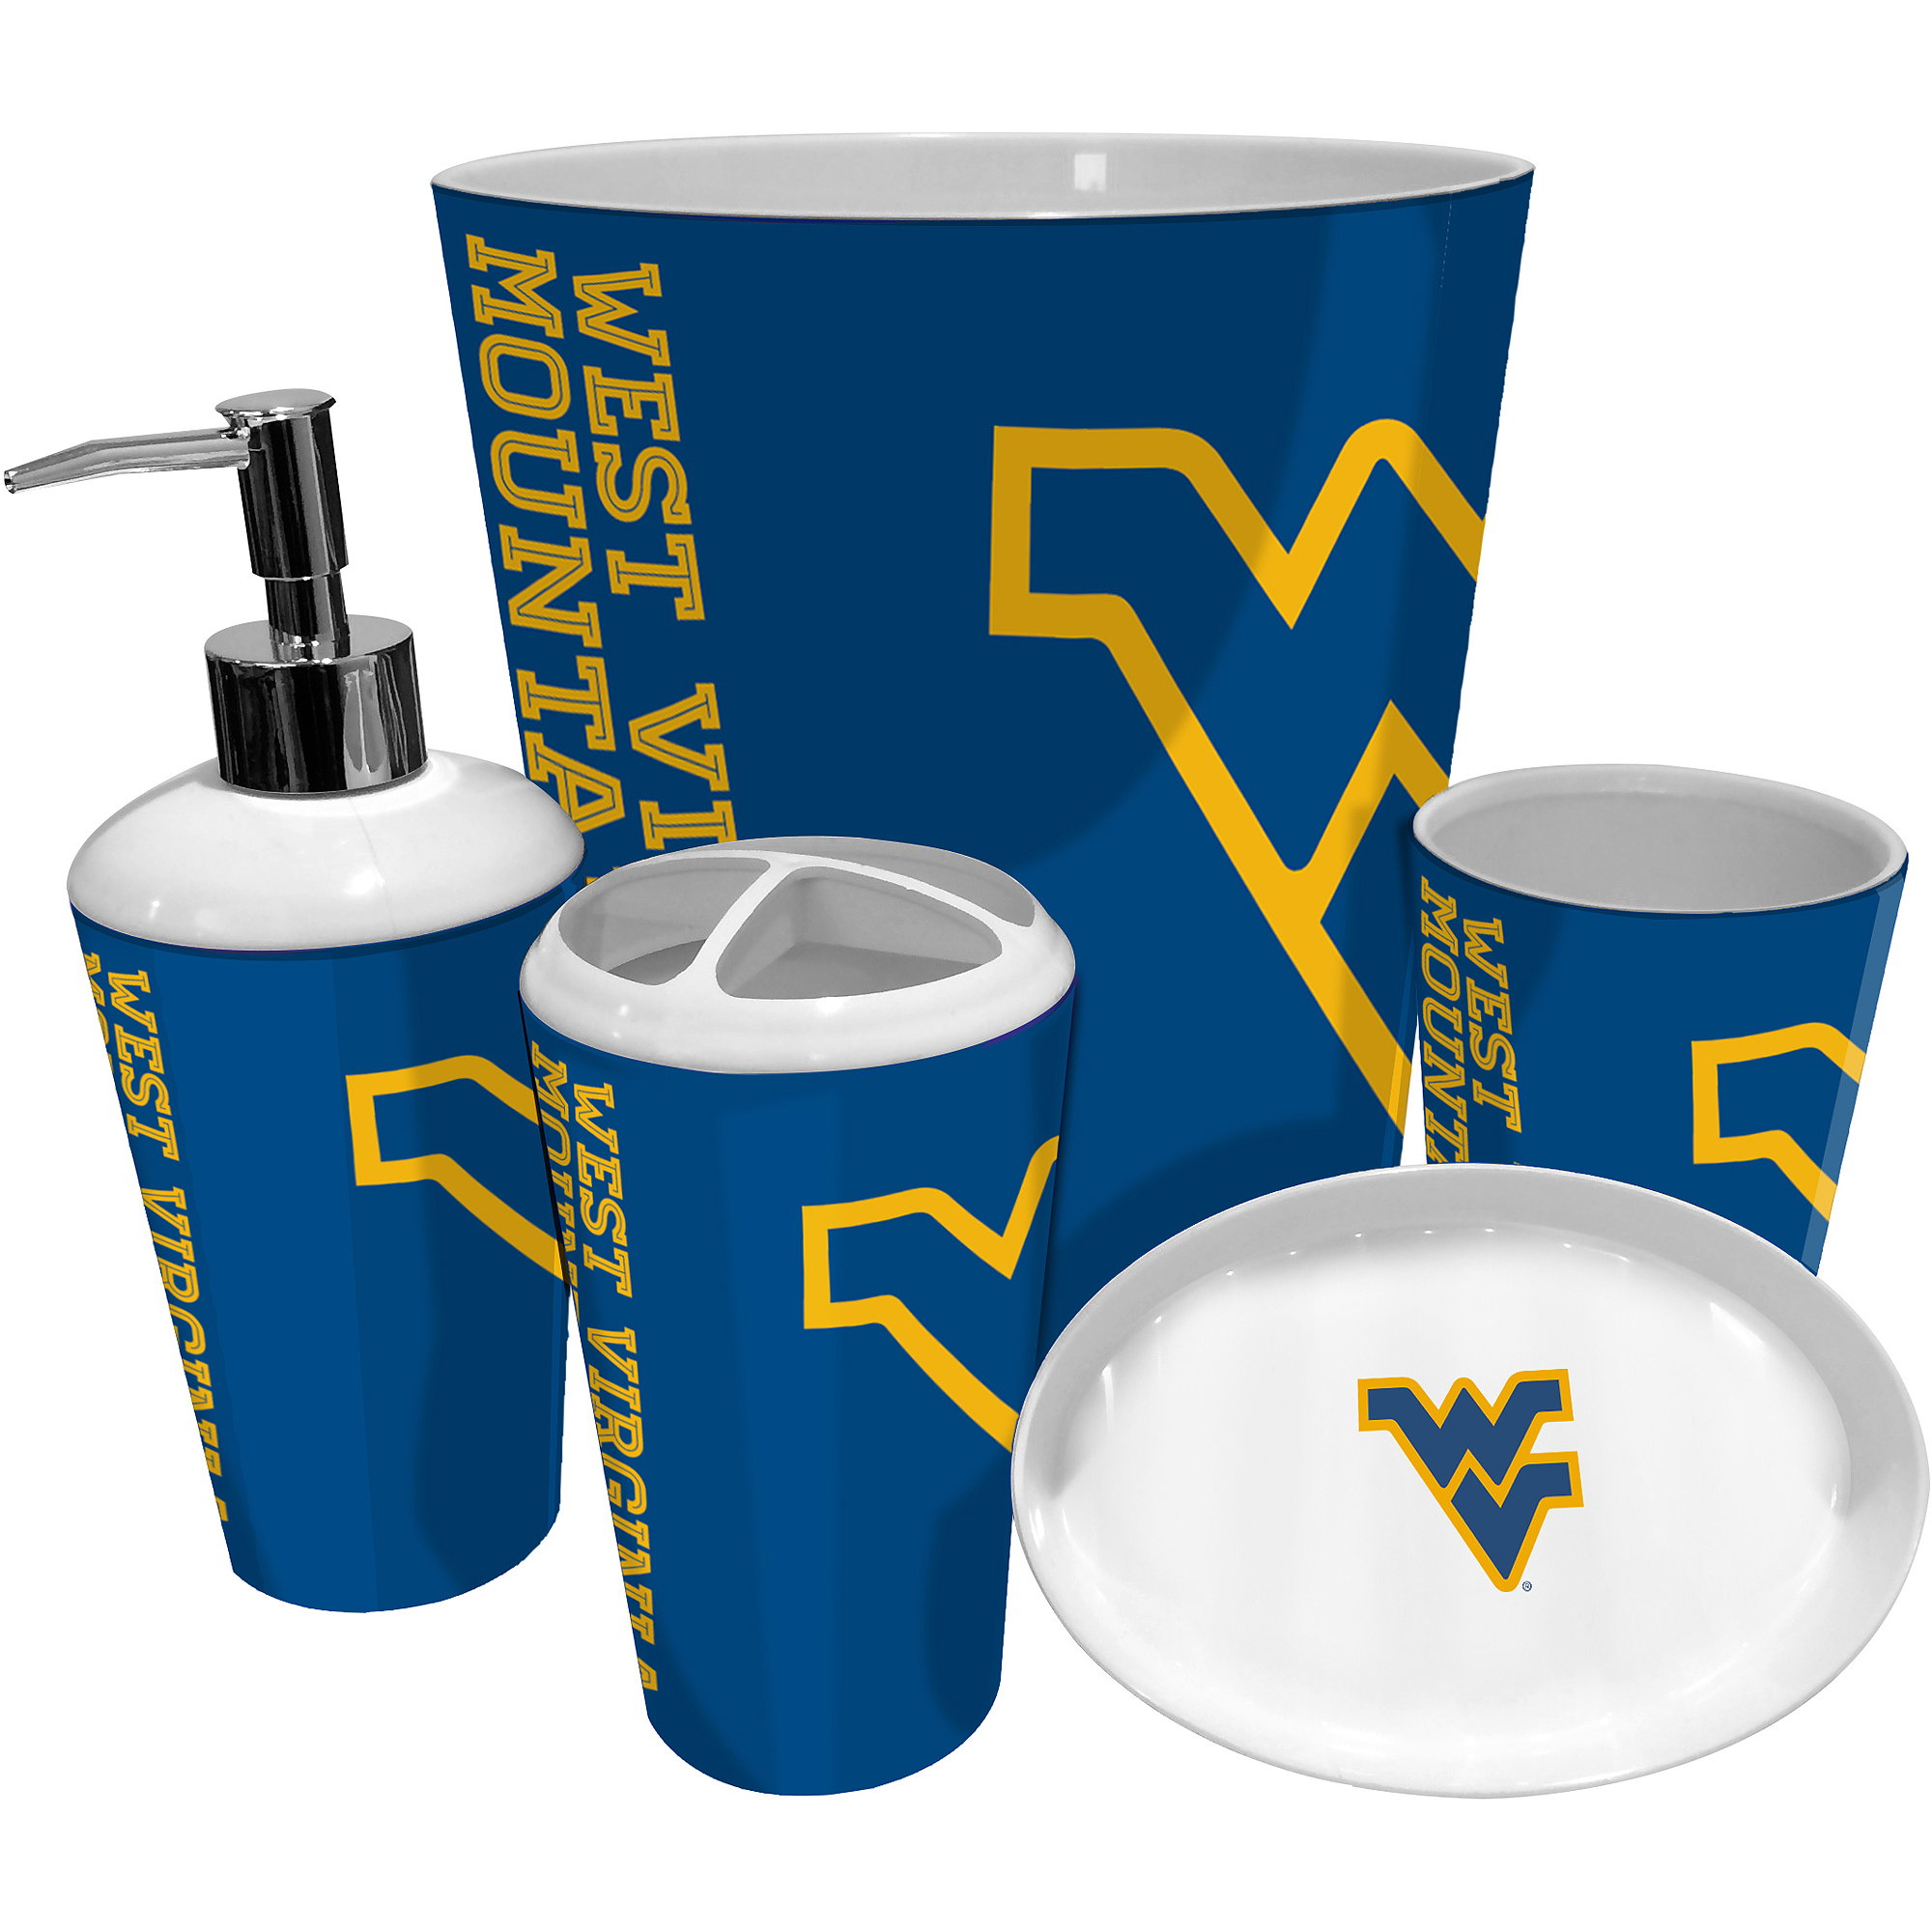 NCAA University of West Virginia Decorative Bath Collection - Bath Towel